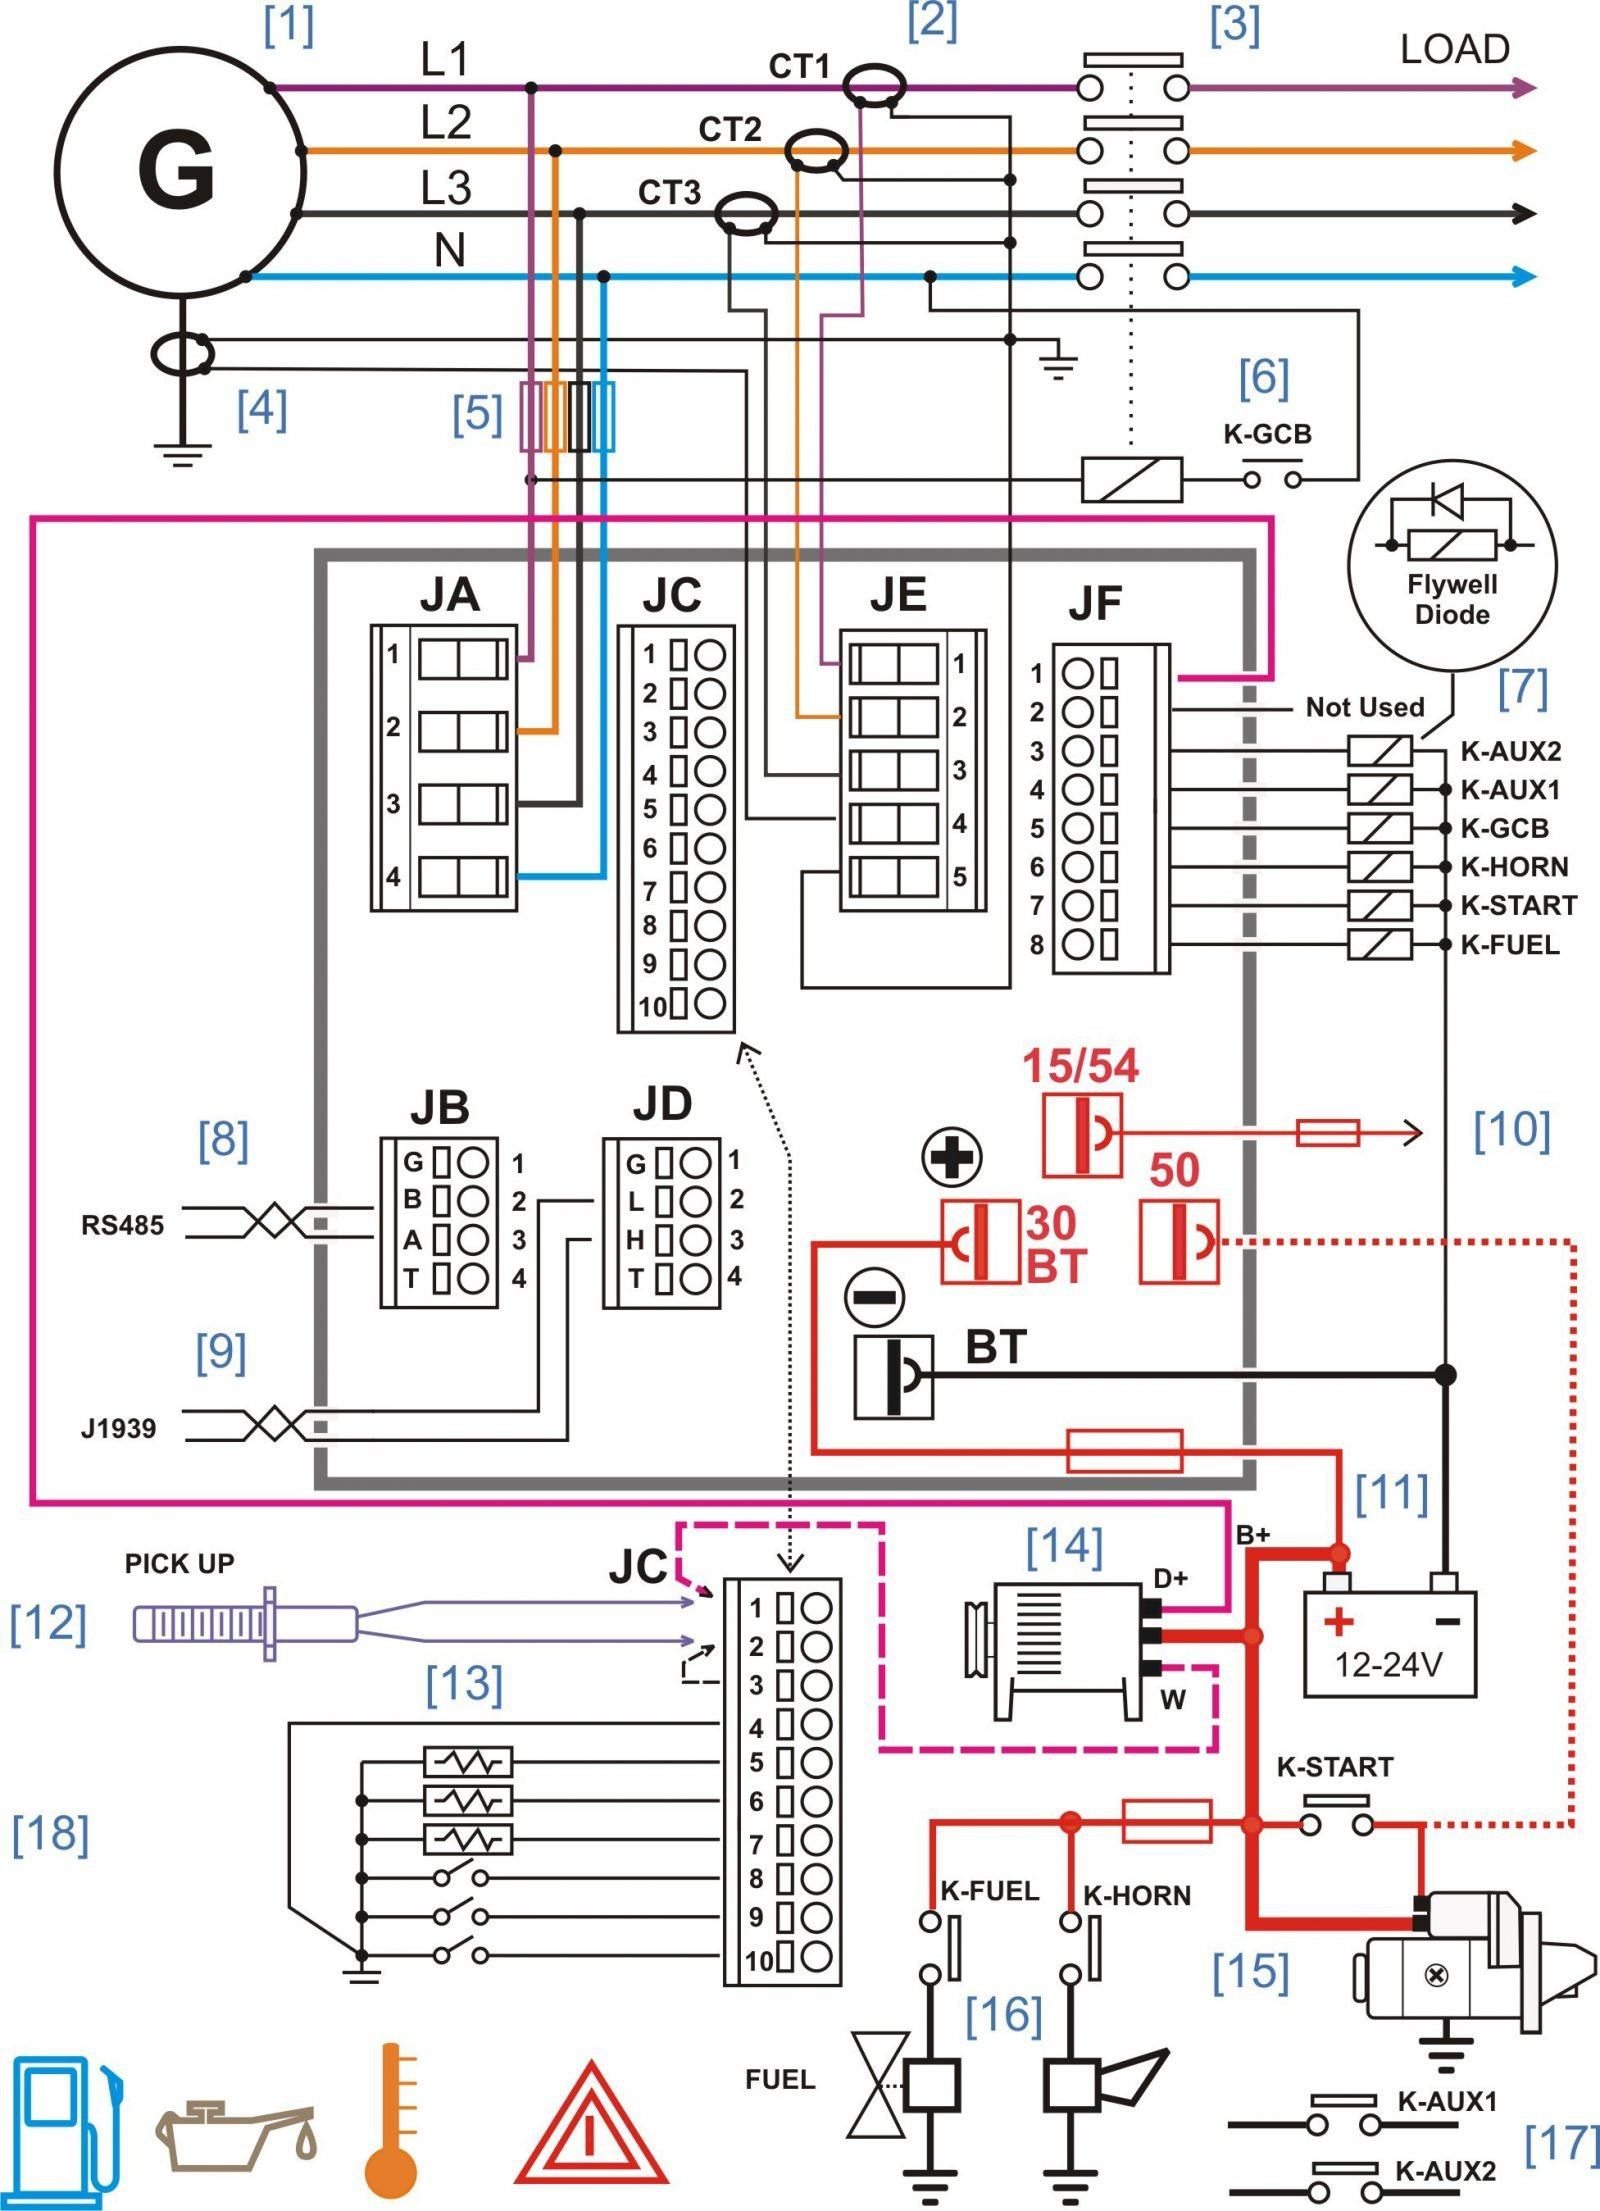 Car Radio Circuit Diagram Lovely Car Stereo Wiring Diagram Diagram Of Car Radio Circuit Diagram